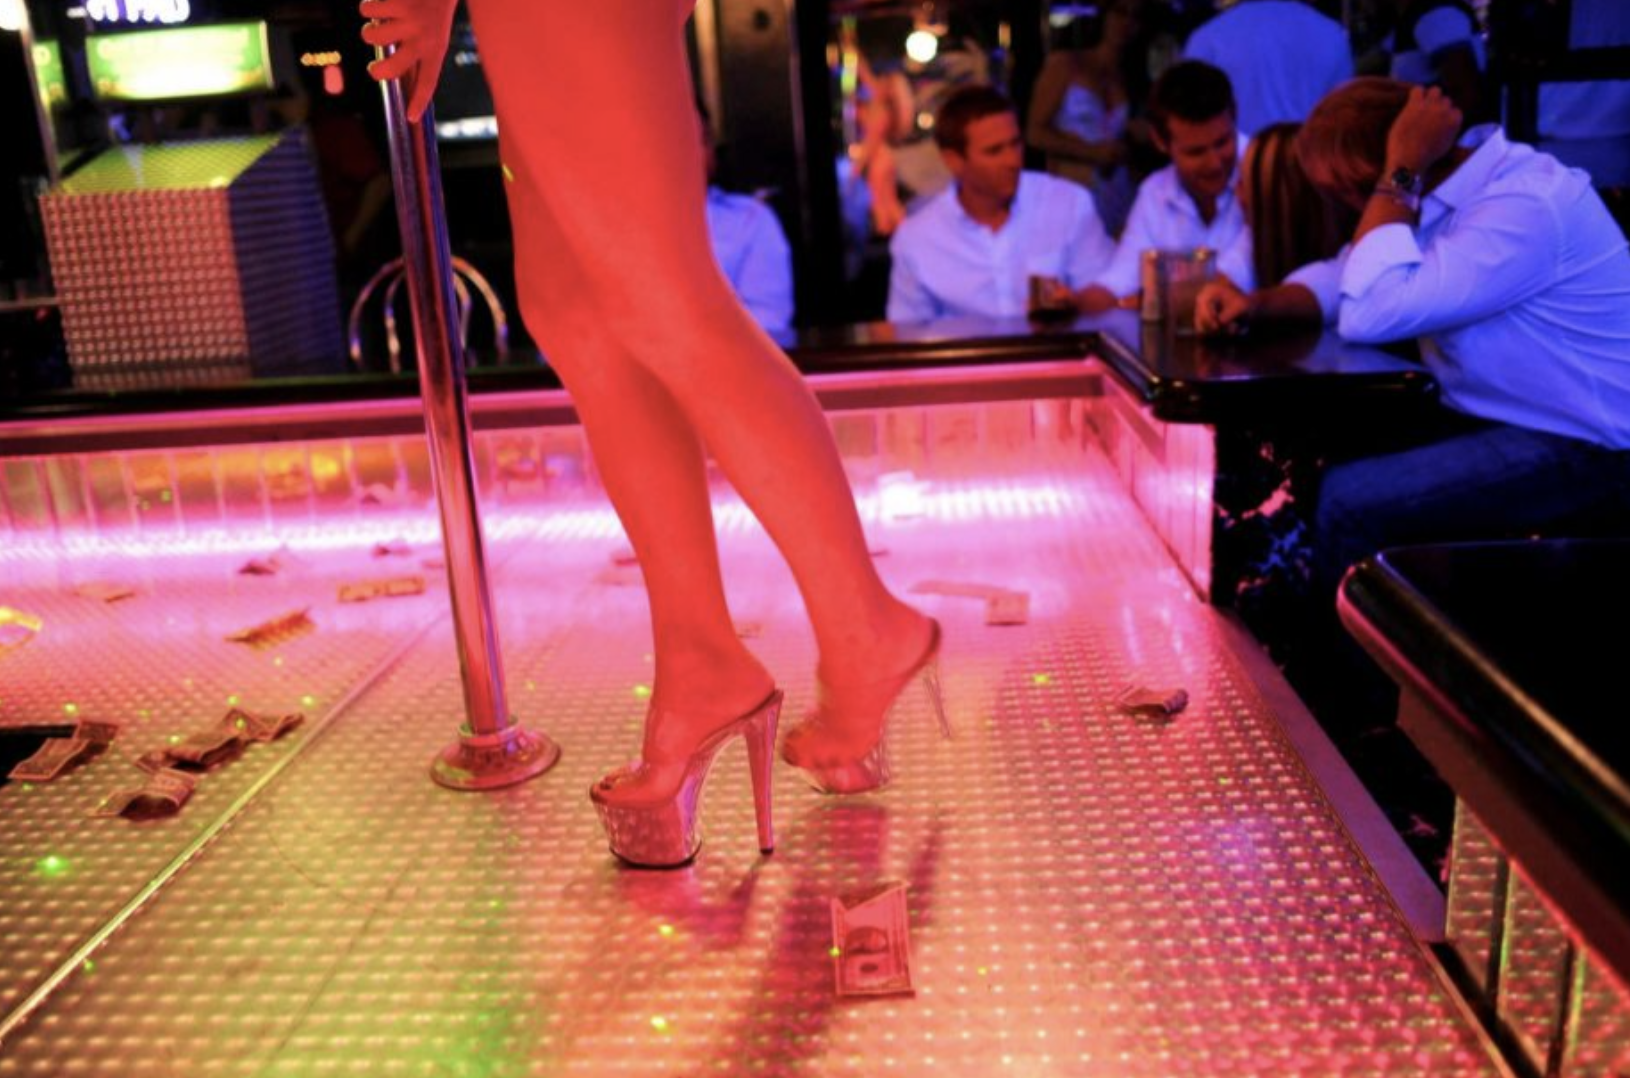 Bill Introduced in Congress to Investigate Human Trafficking in Strip Clubs